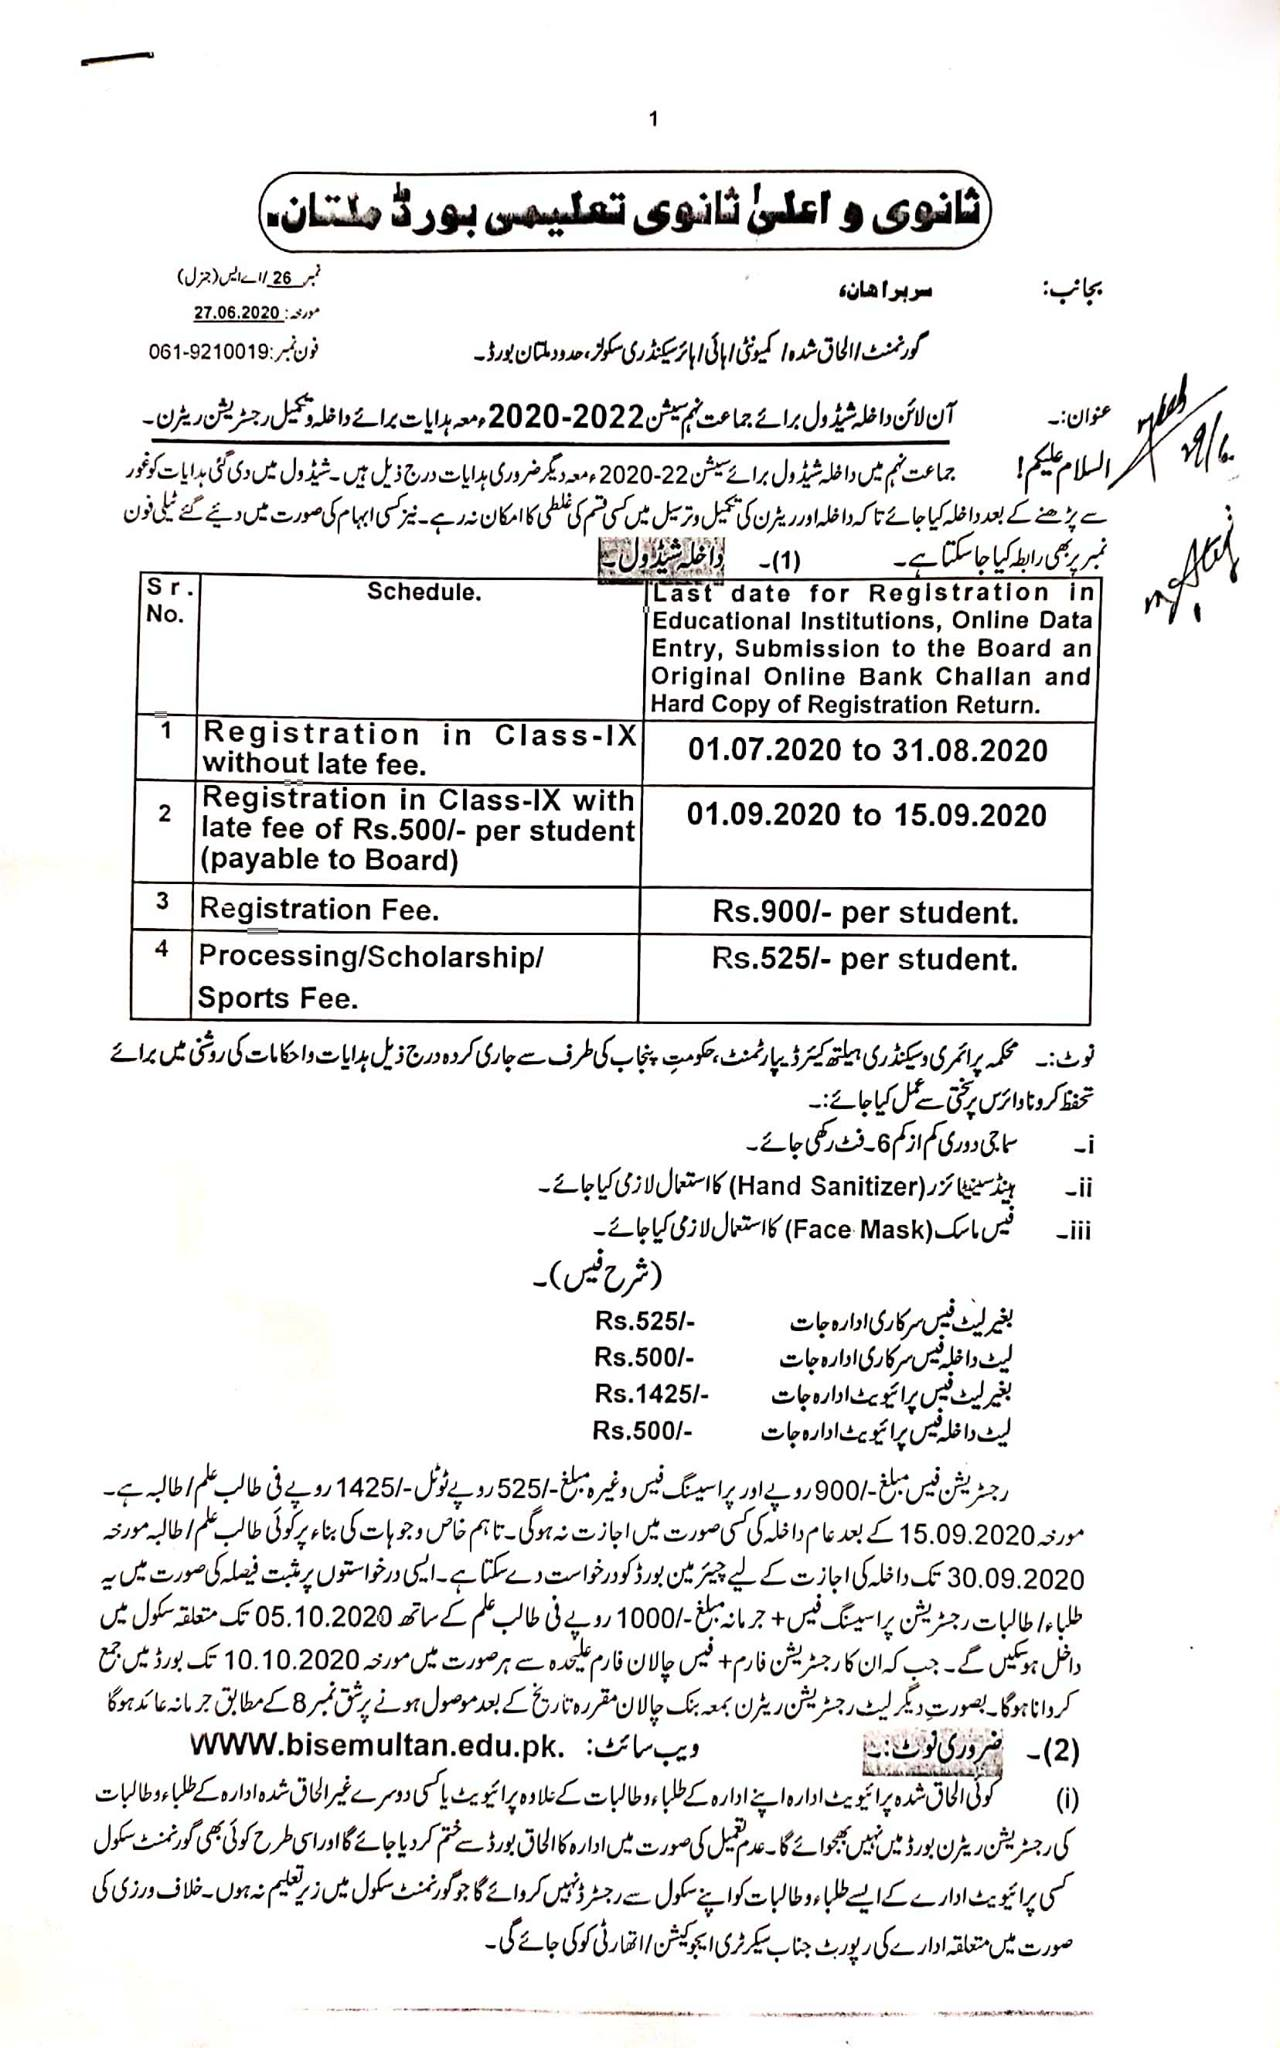 BISE Multan Online Admission Schedule and Registration Class IX 2020-22